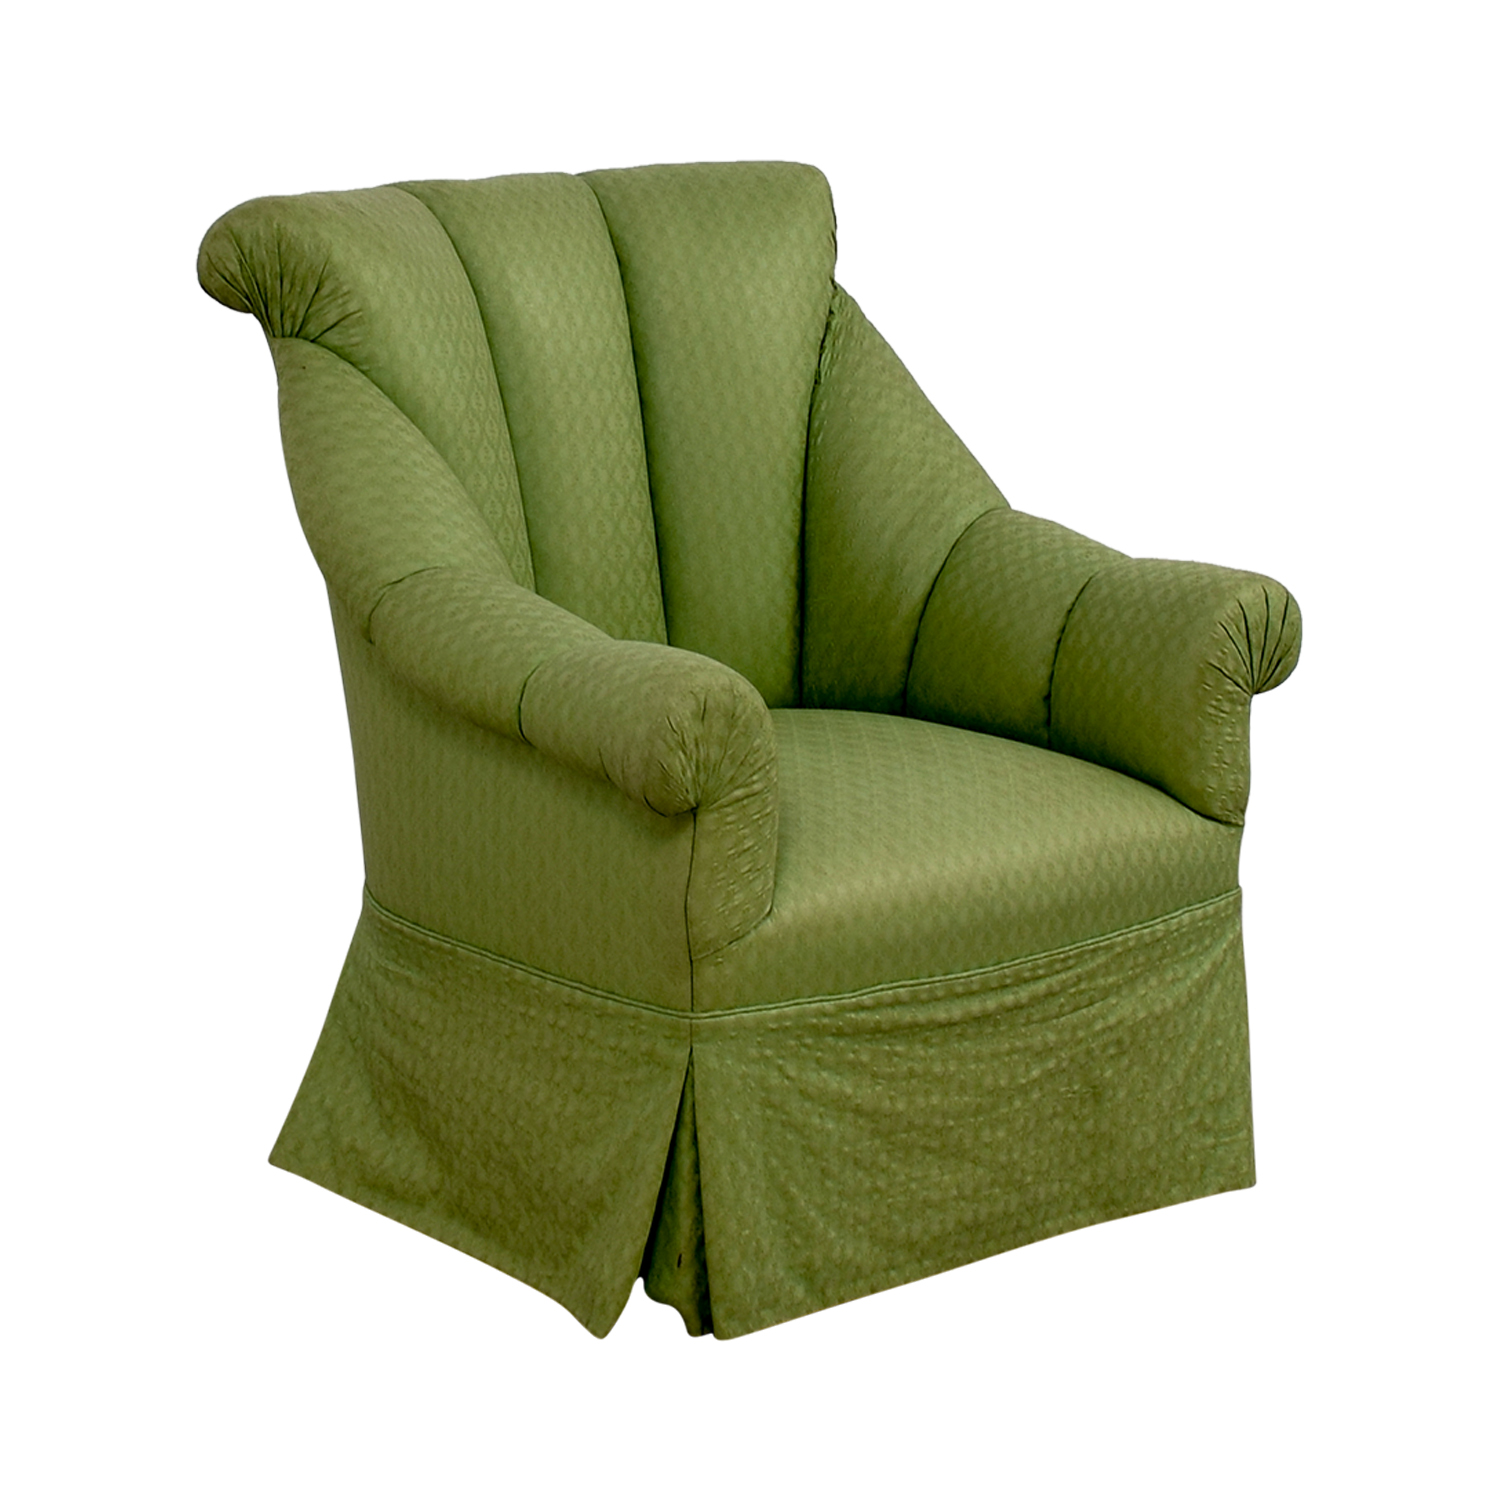 buy Furniture Masters Furniture Masters Green Skirted Armchair online